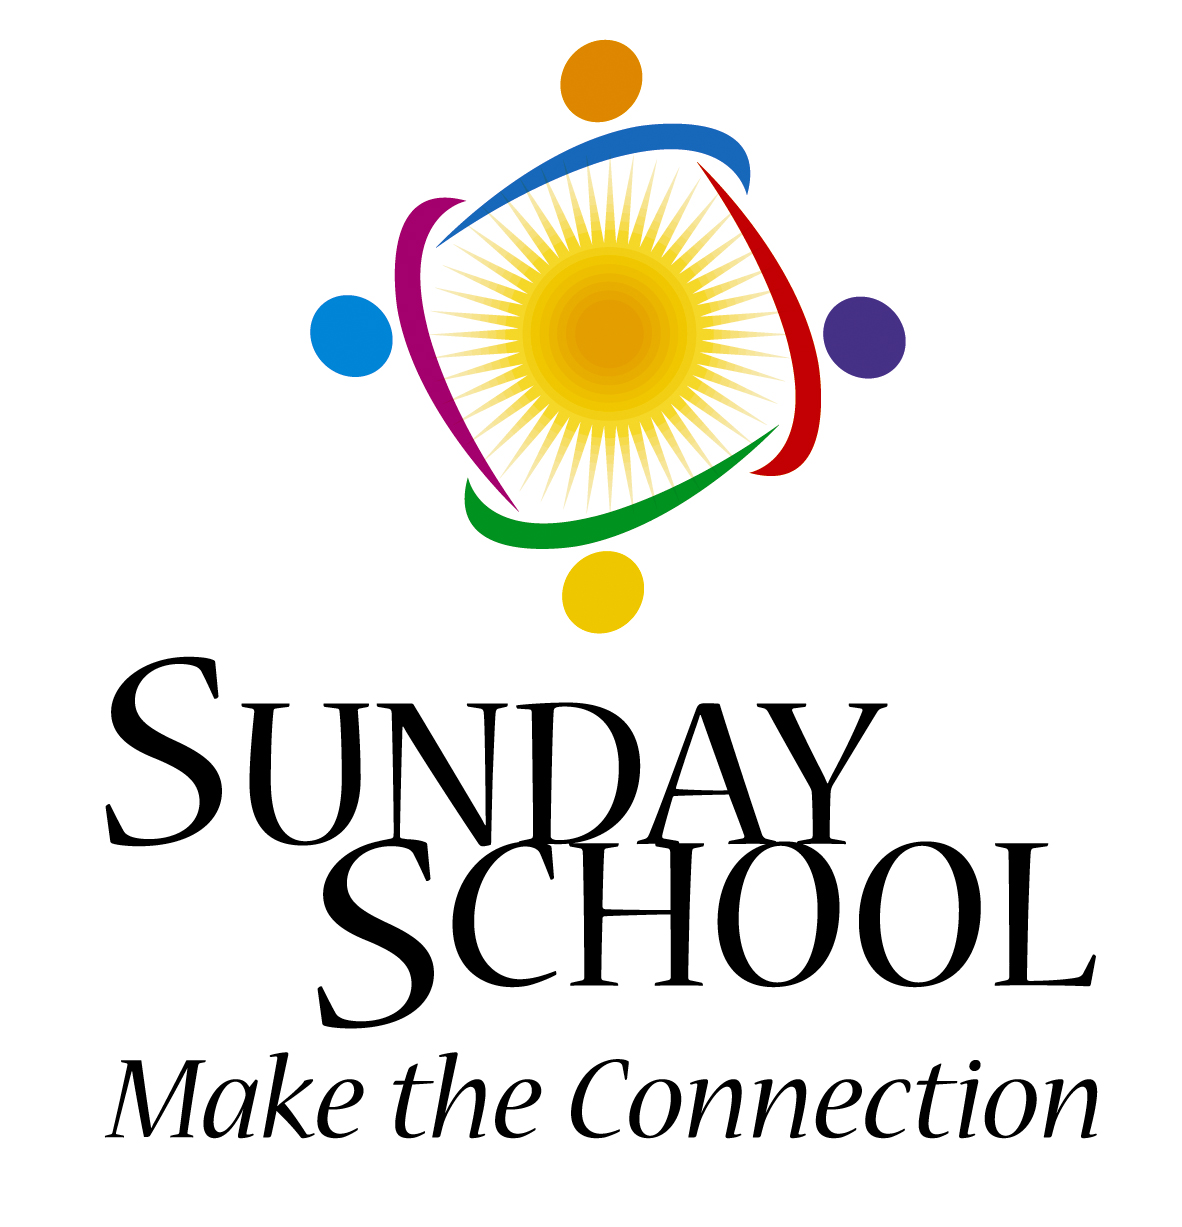 Clipart Showing Being Connected To The Sunday School.